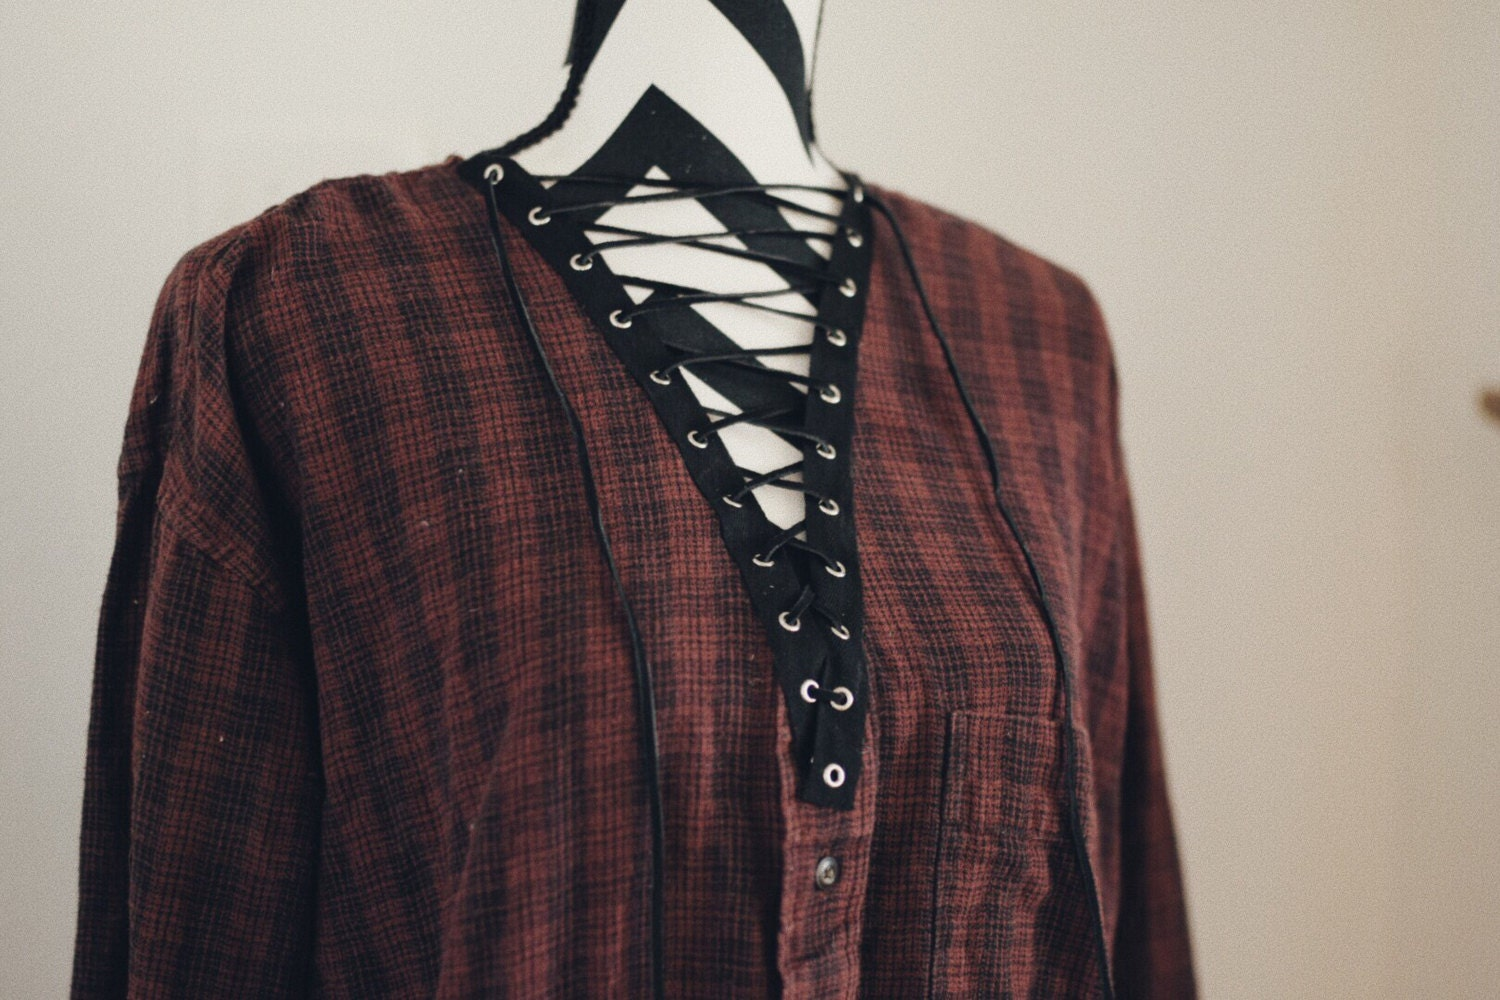 Shirt design with laces - Flannel Lace Up Flannel Shirt Lace Up Shirt Grunge Flannel Oversized Flannel